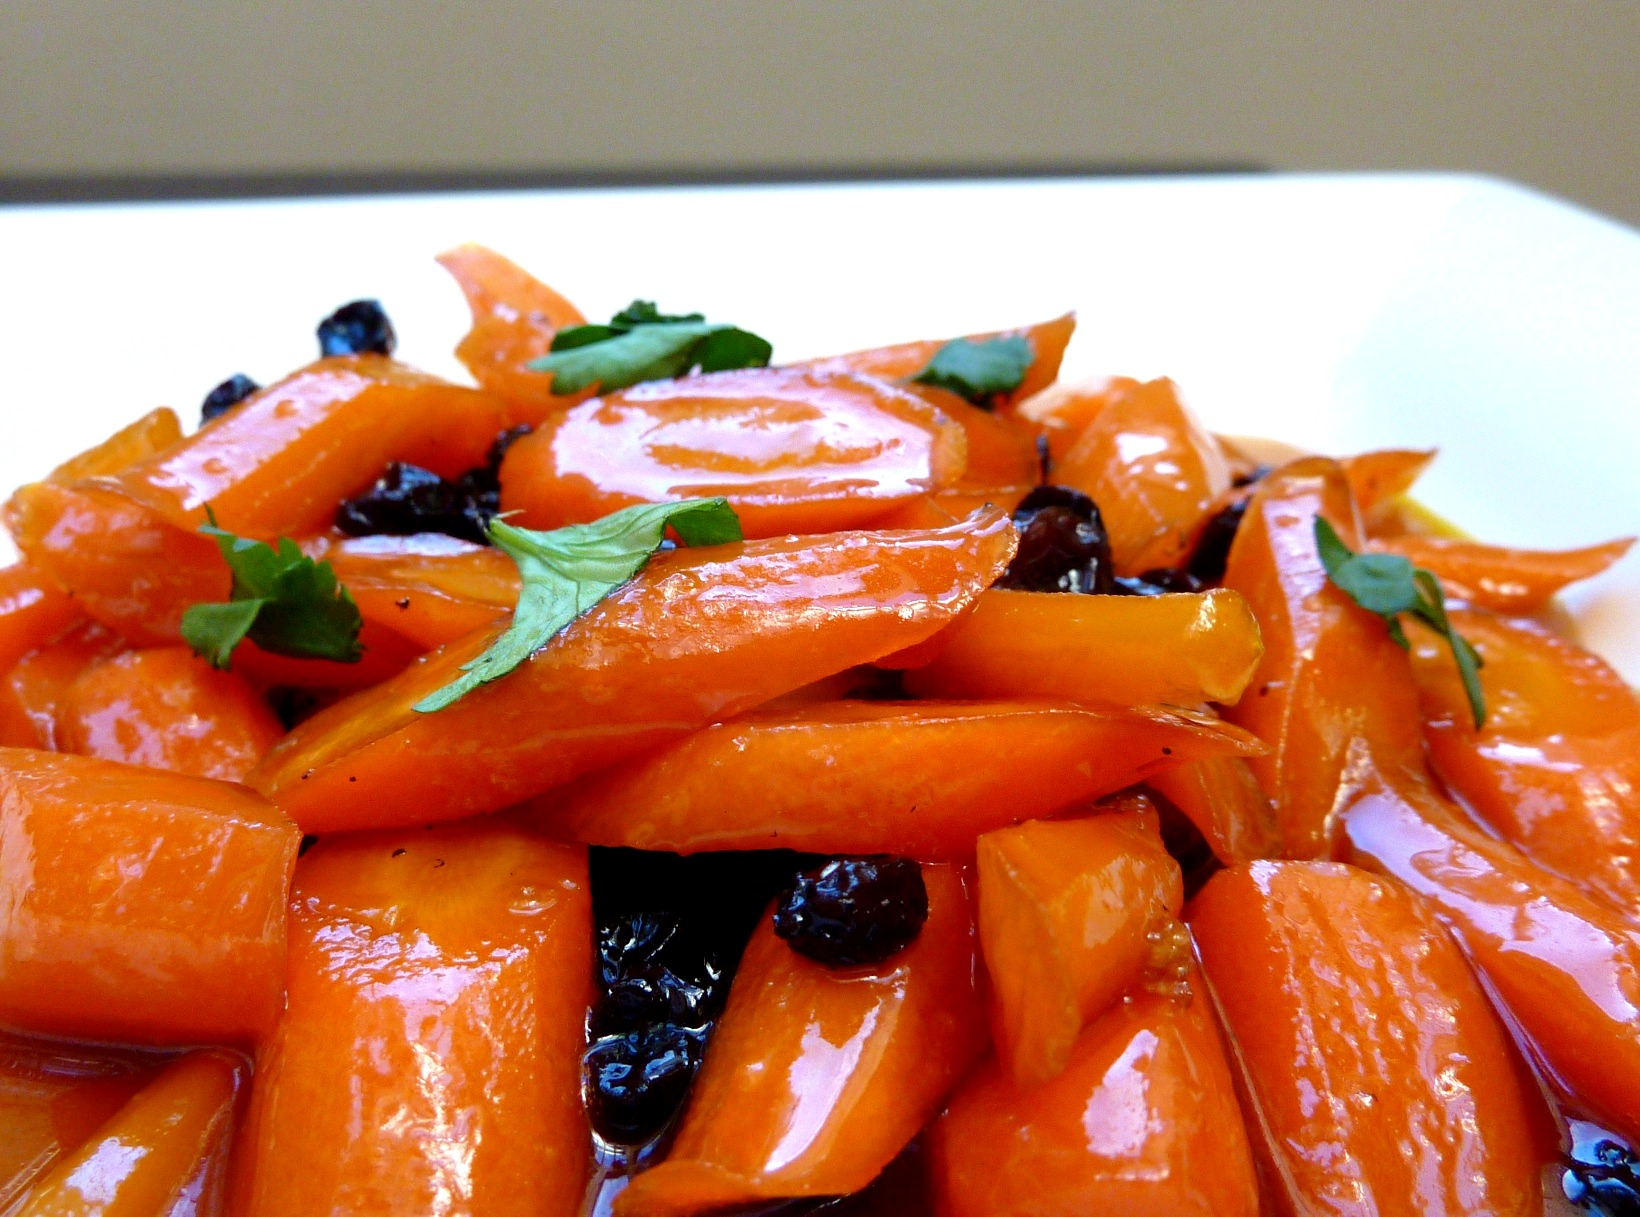 Honey Tangerine Glazed Carrots with Currants